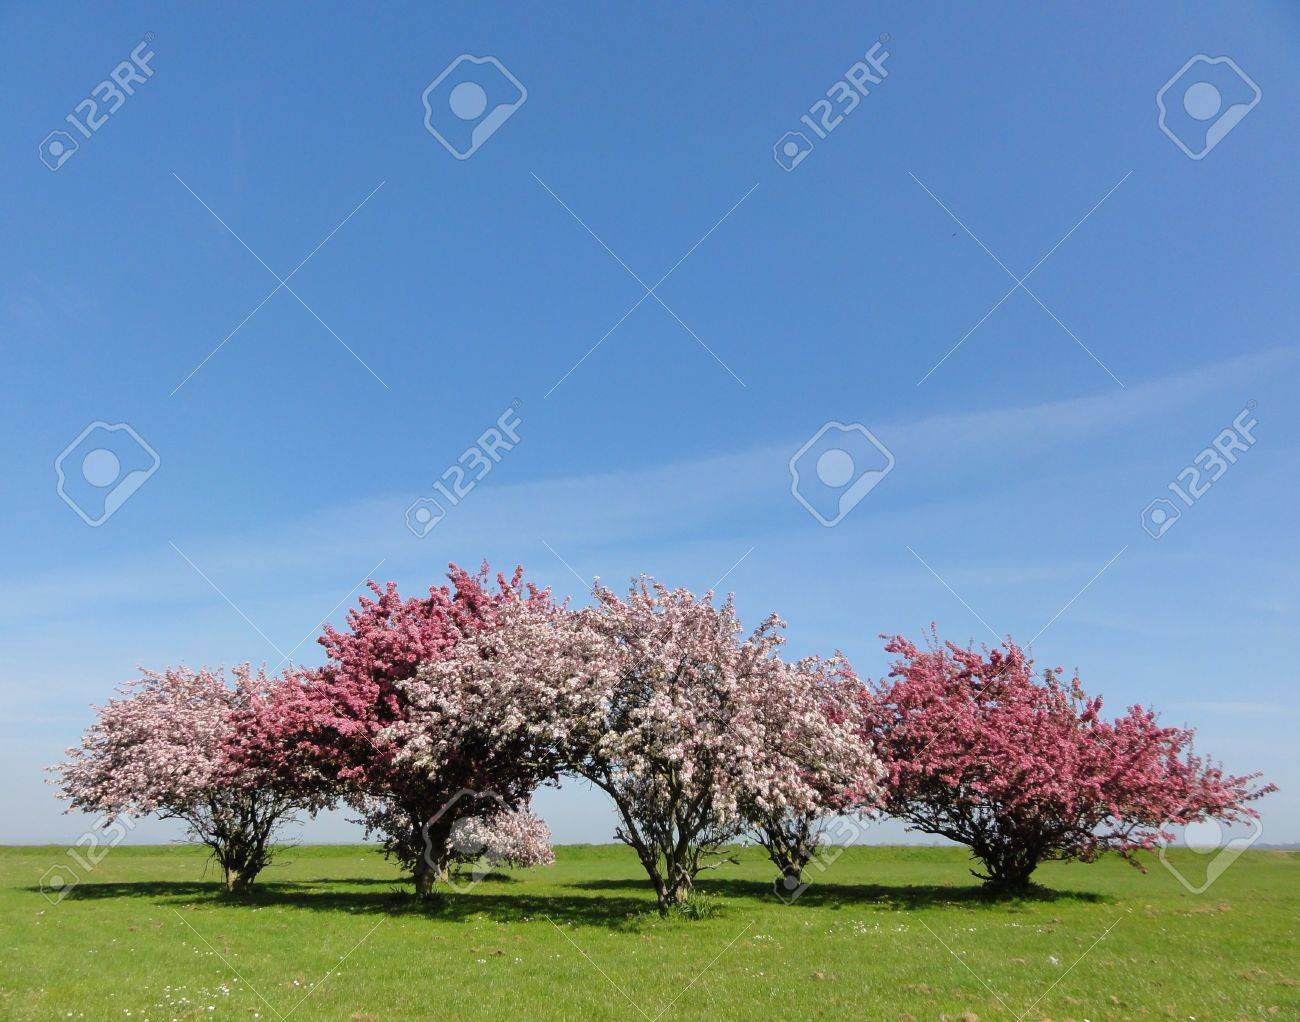 Photo of blossom trees on grass with a blue sky background stock photo of blossom trees on grass with a blue sky background stock photo 9324703 izmirmasajfo